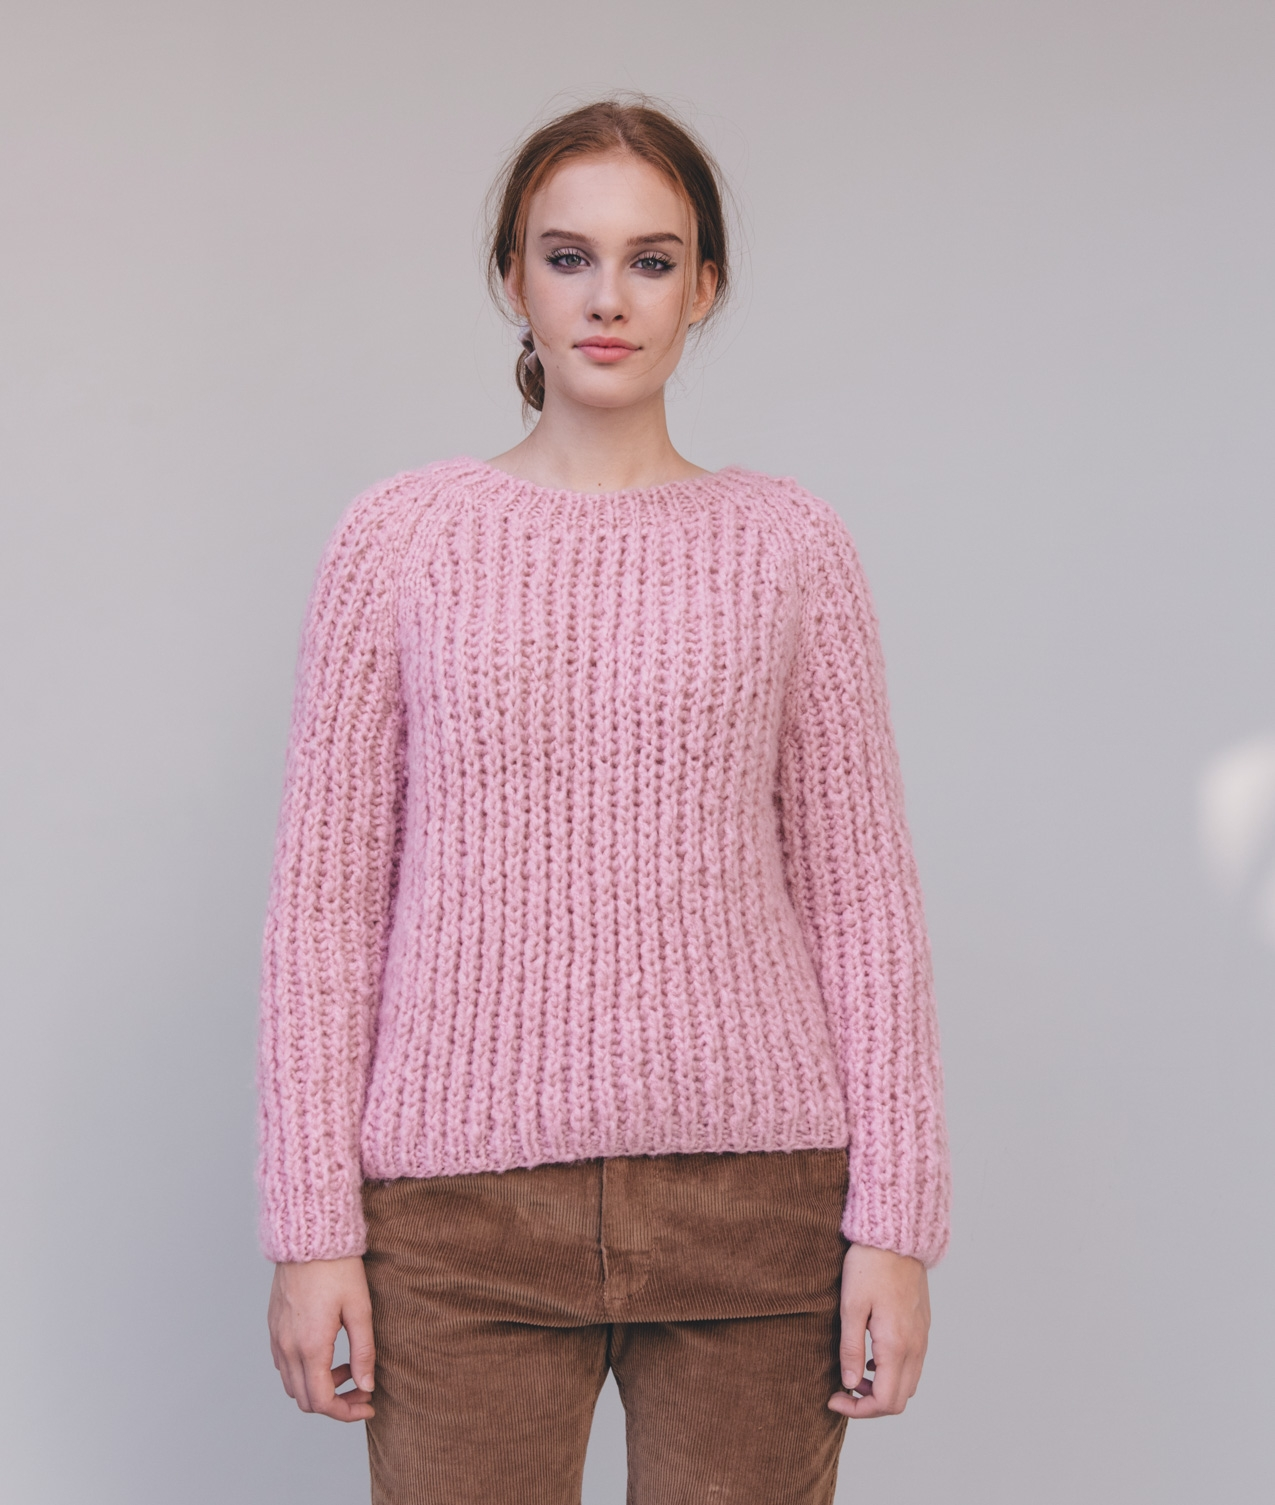 Maglie e Top - Lana - MARSHMALLOW SWEATER - 1